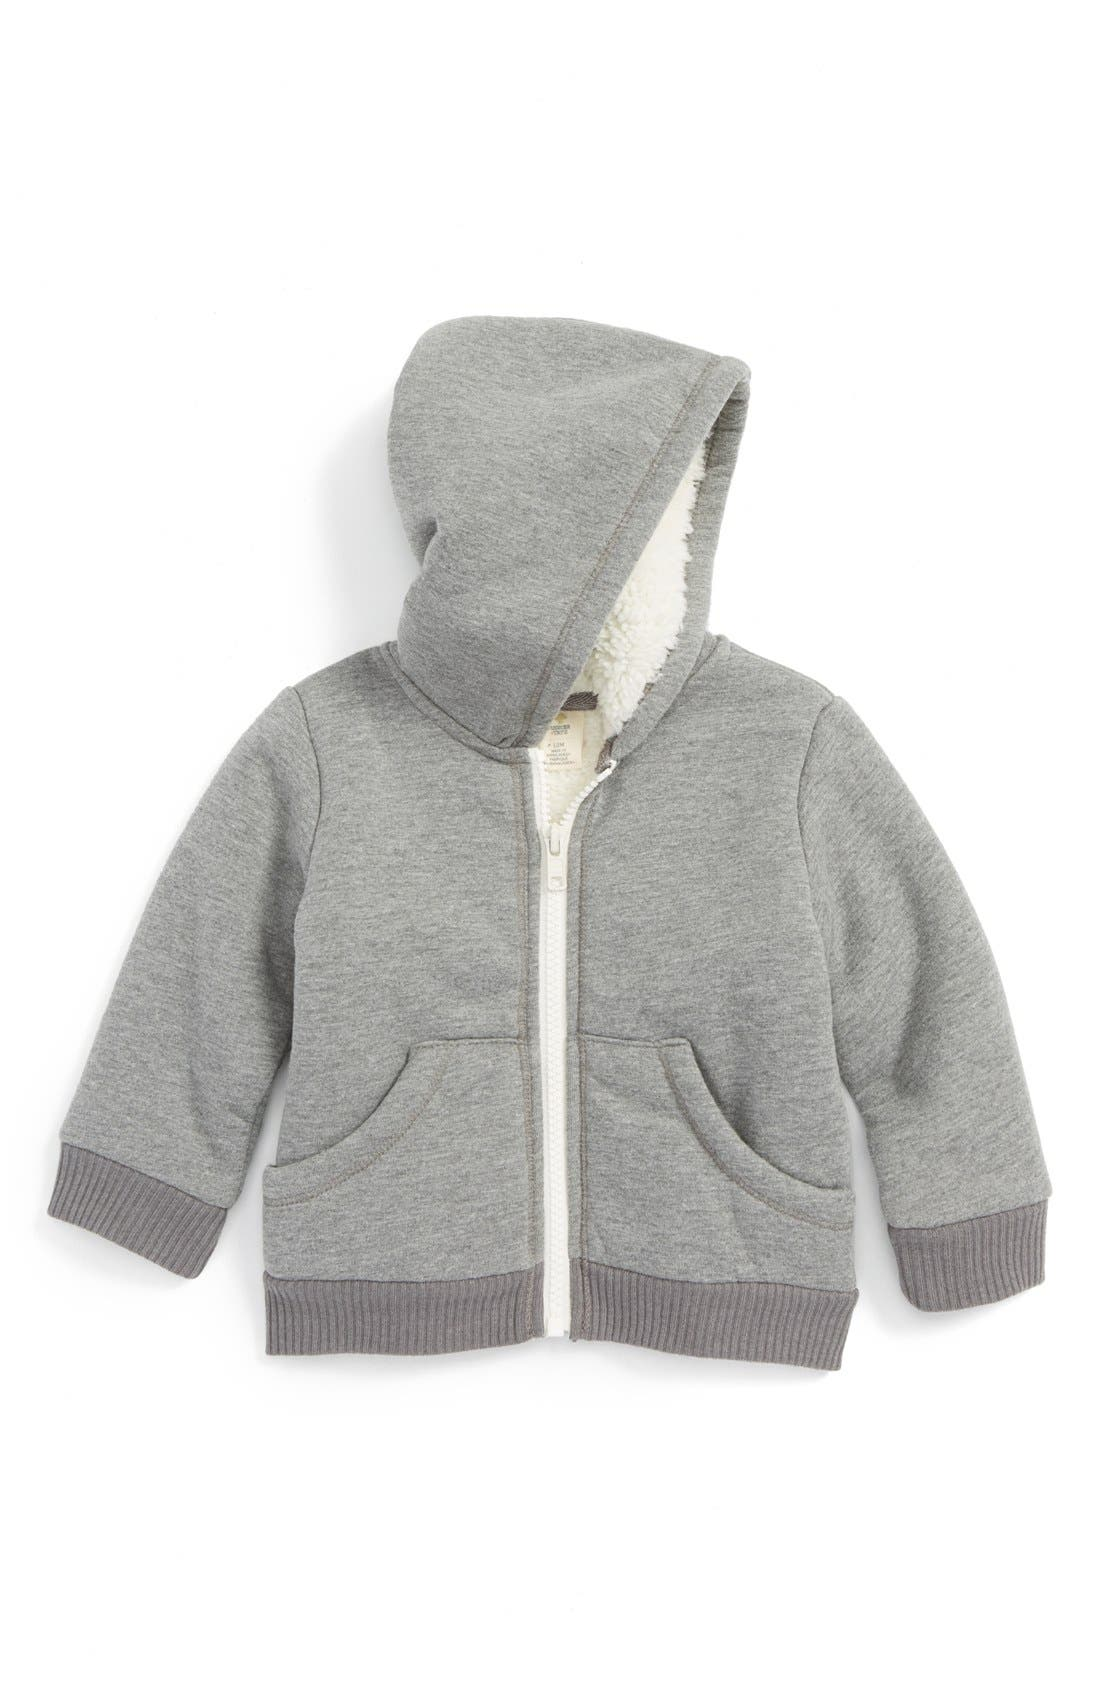 Fuzzy Lined Jacket,                             Main thumbnail 1, color,                             Grey Cloudy Heather